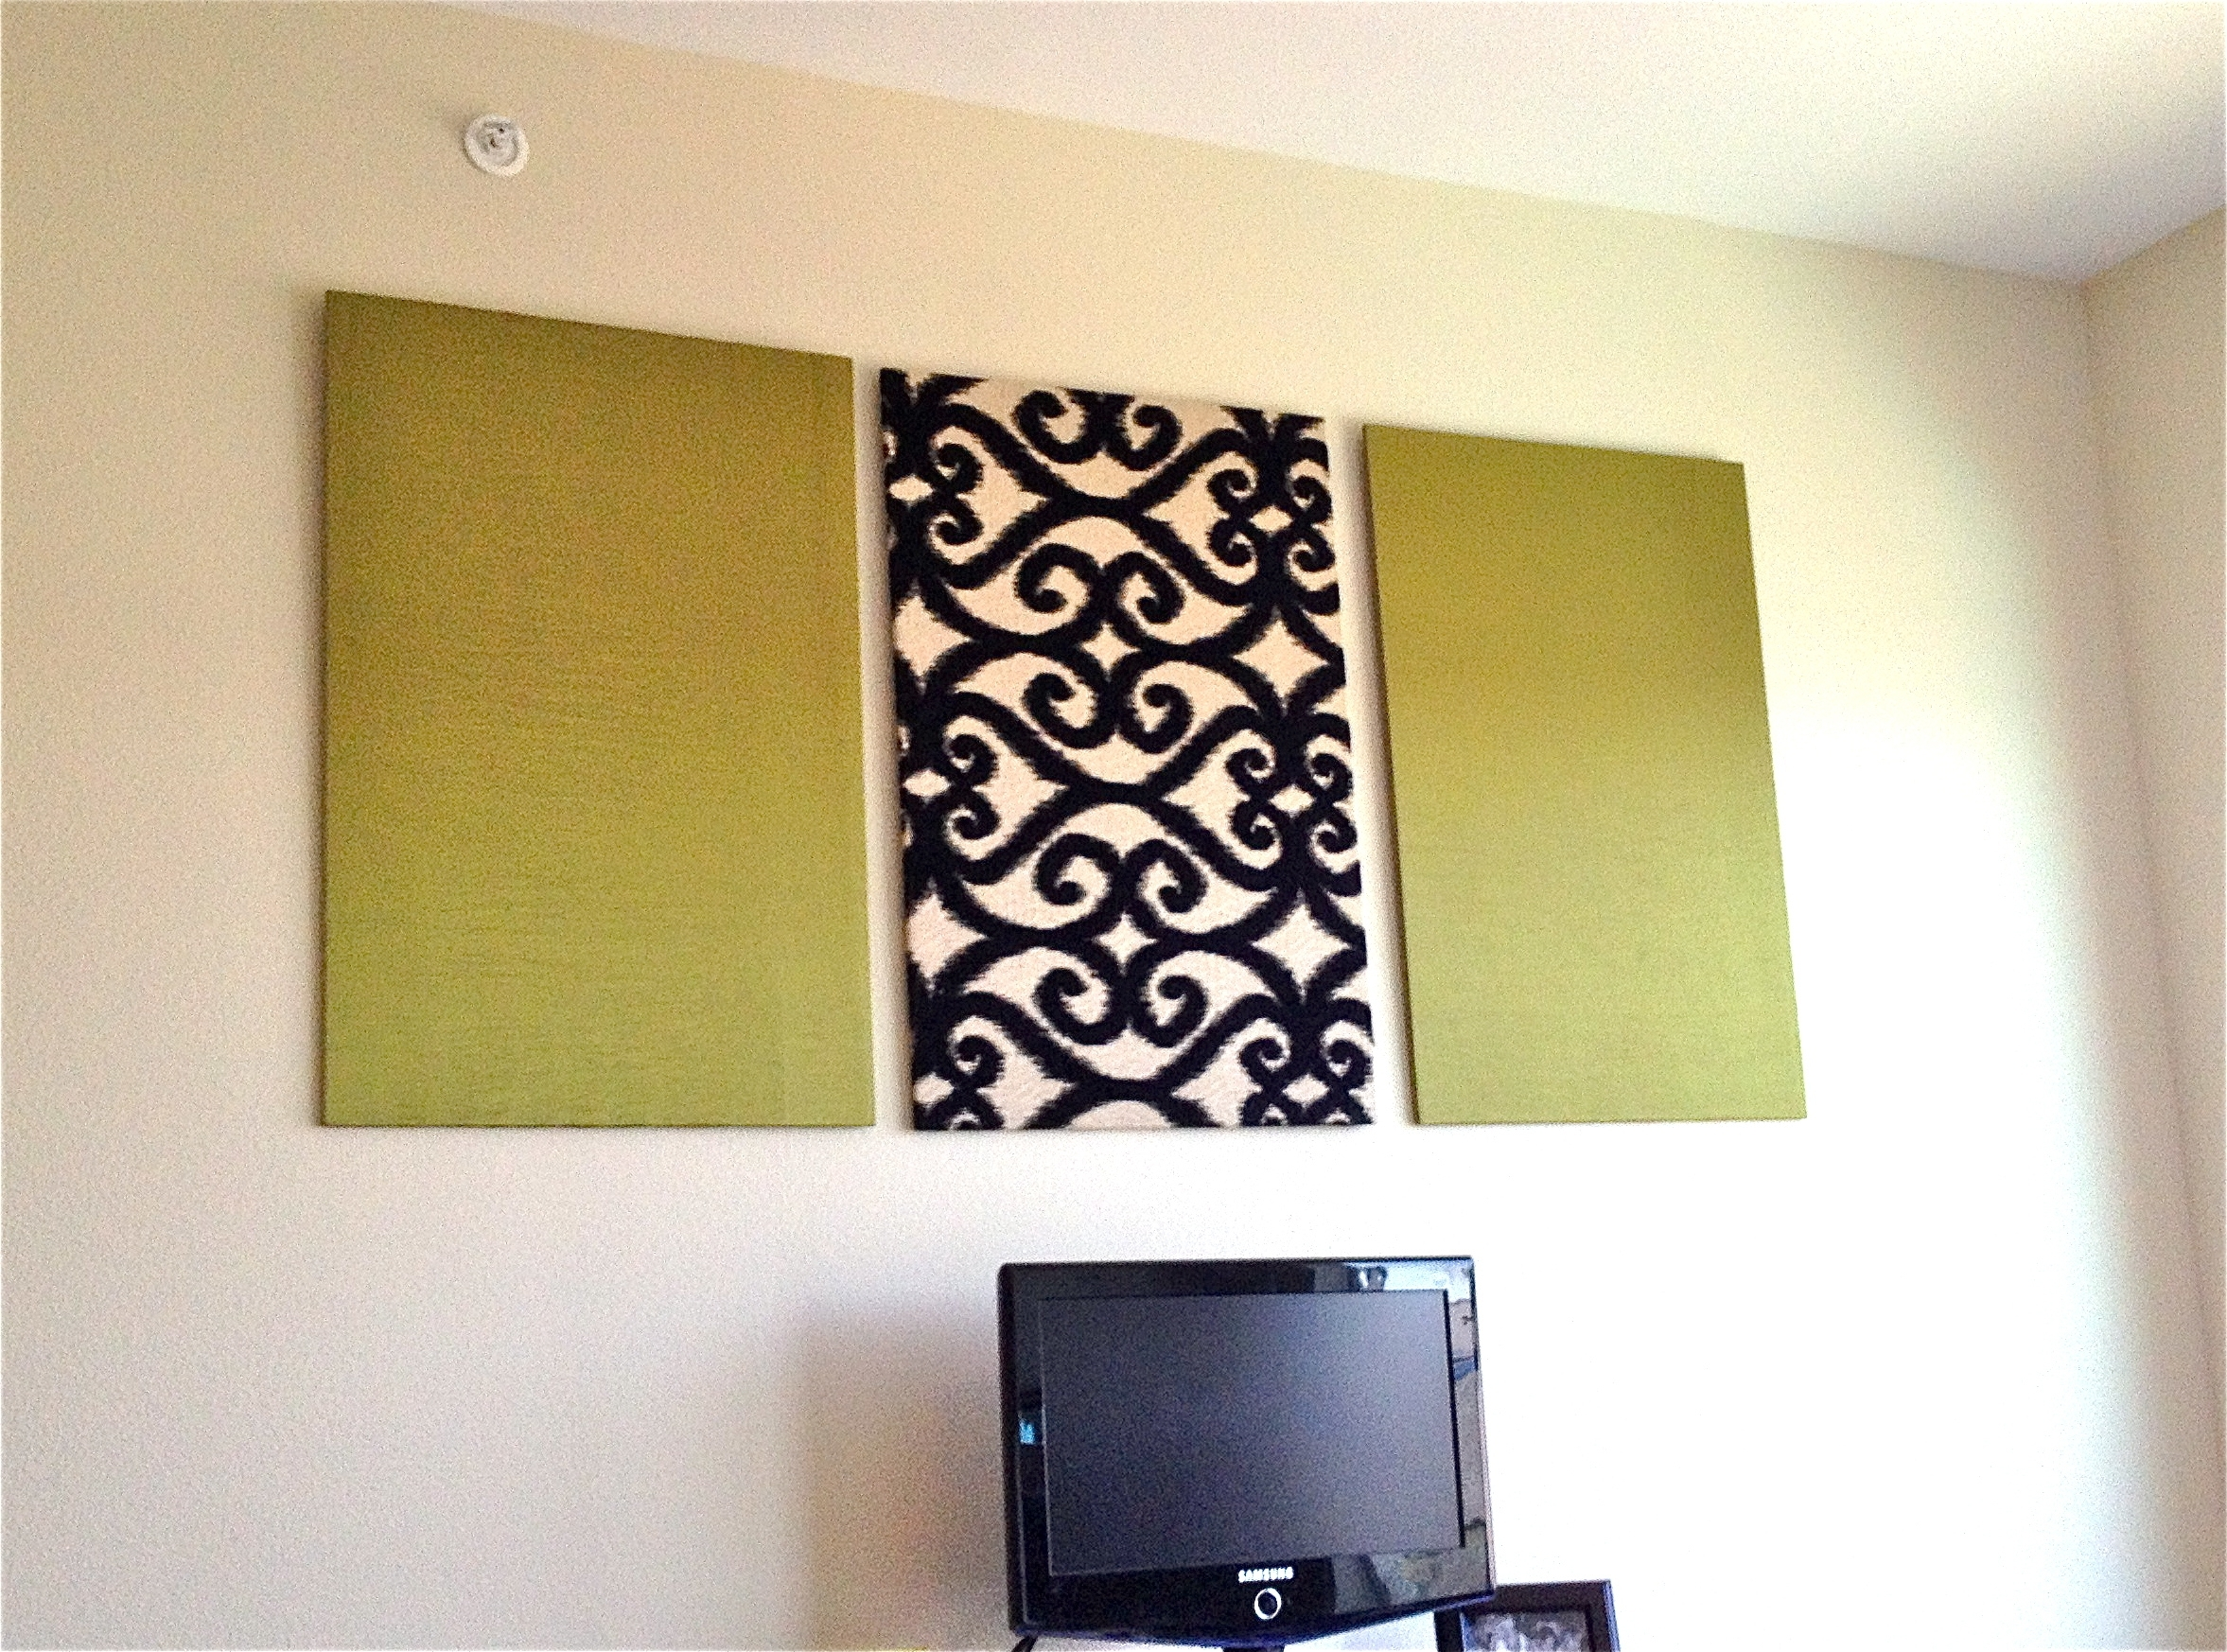 Diy Upholstered Wall Panels | Home Ideas | Pinterest | Upholstered Regarding Most Current High End Fabric Wall Art (View 5 of 15)